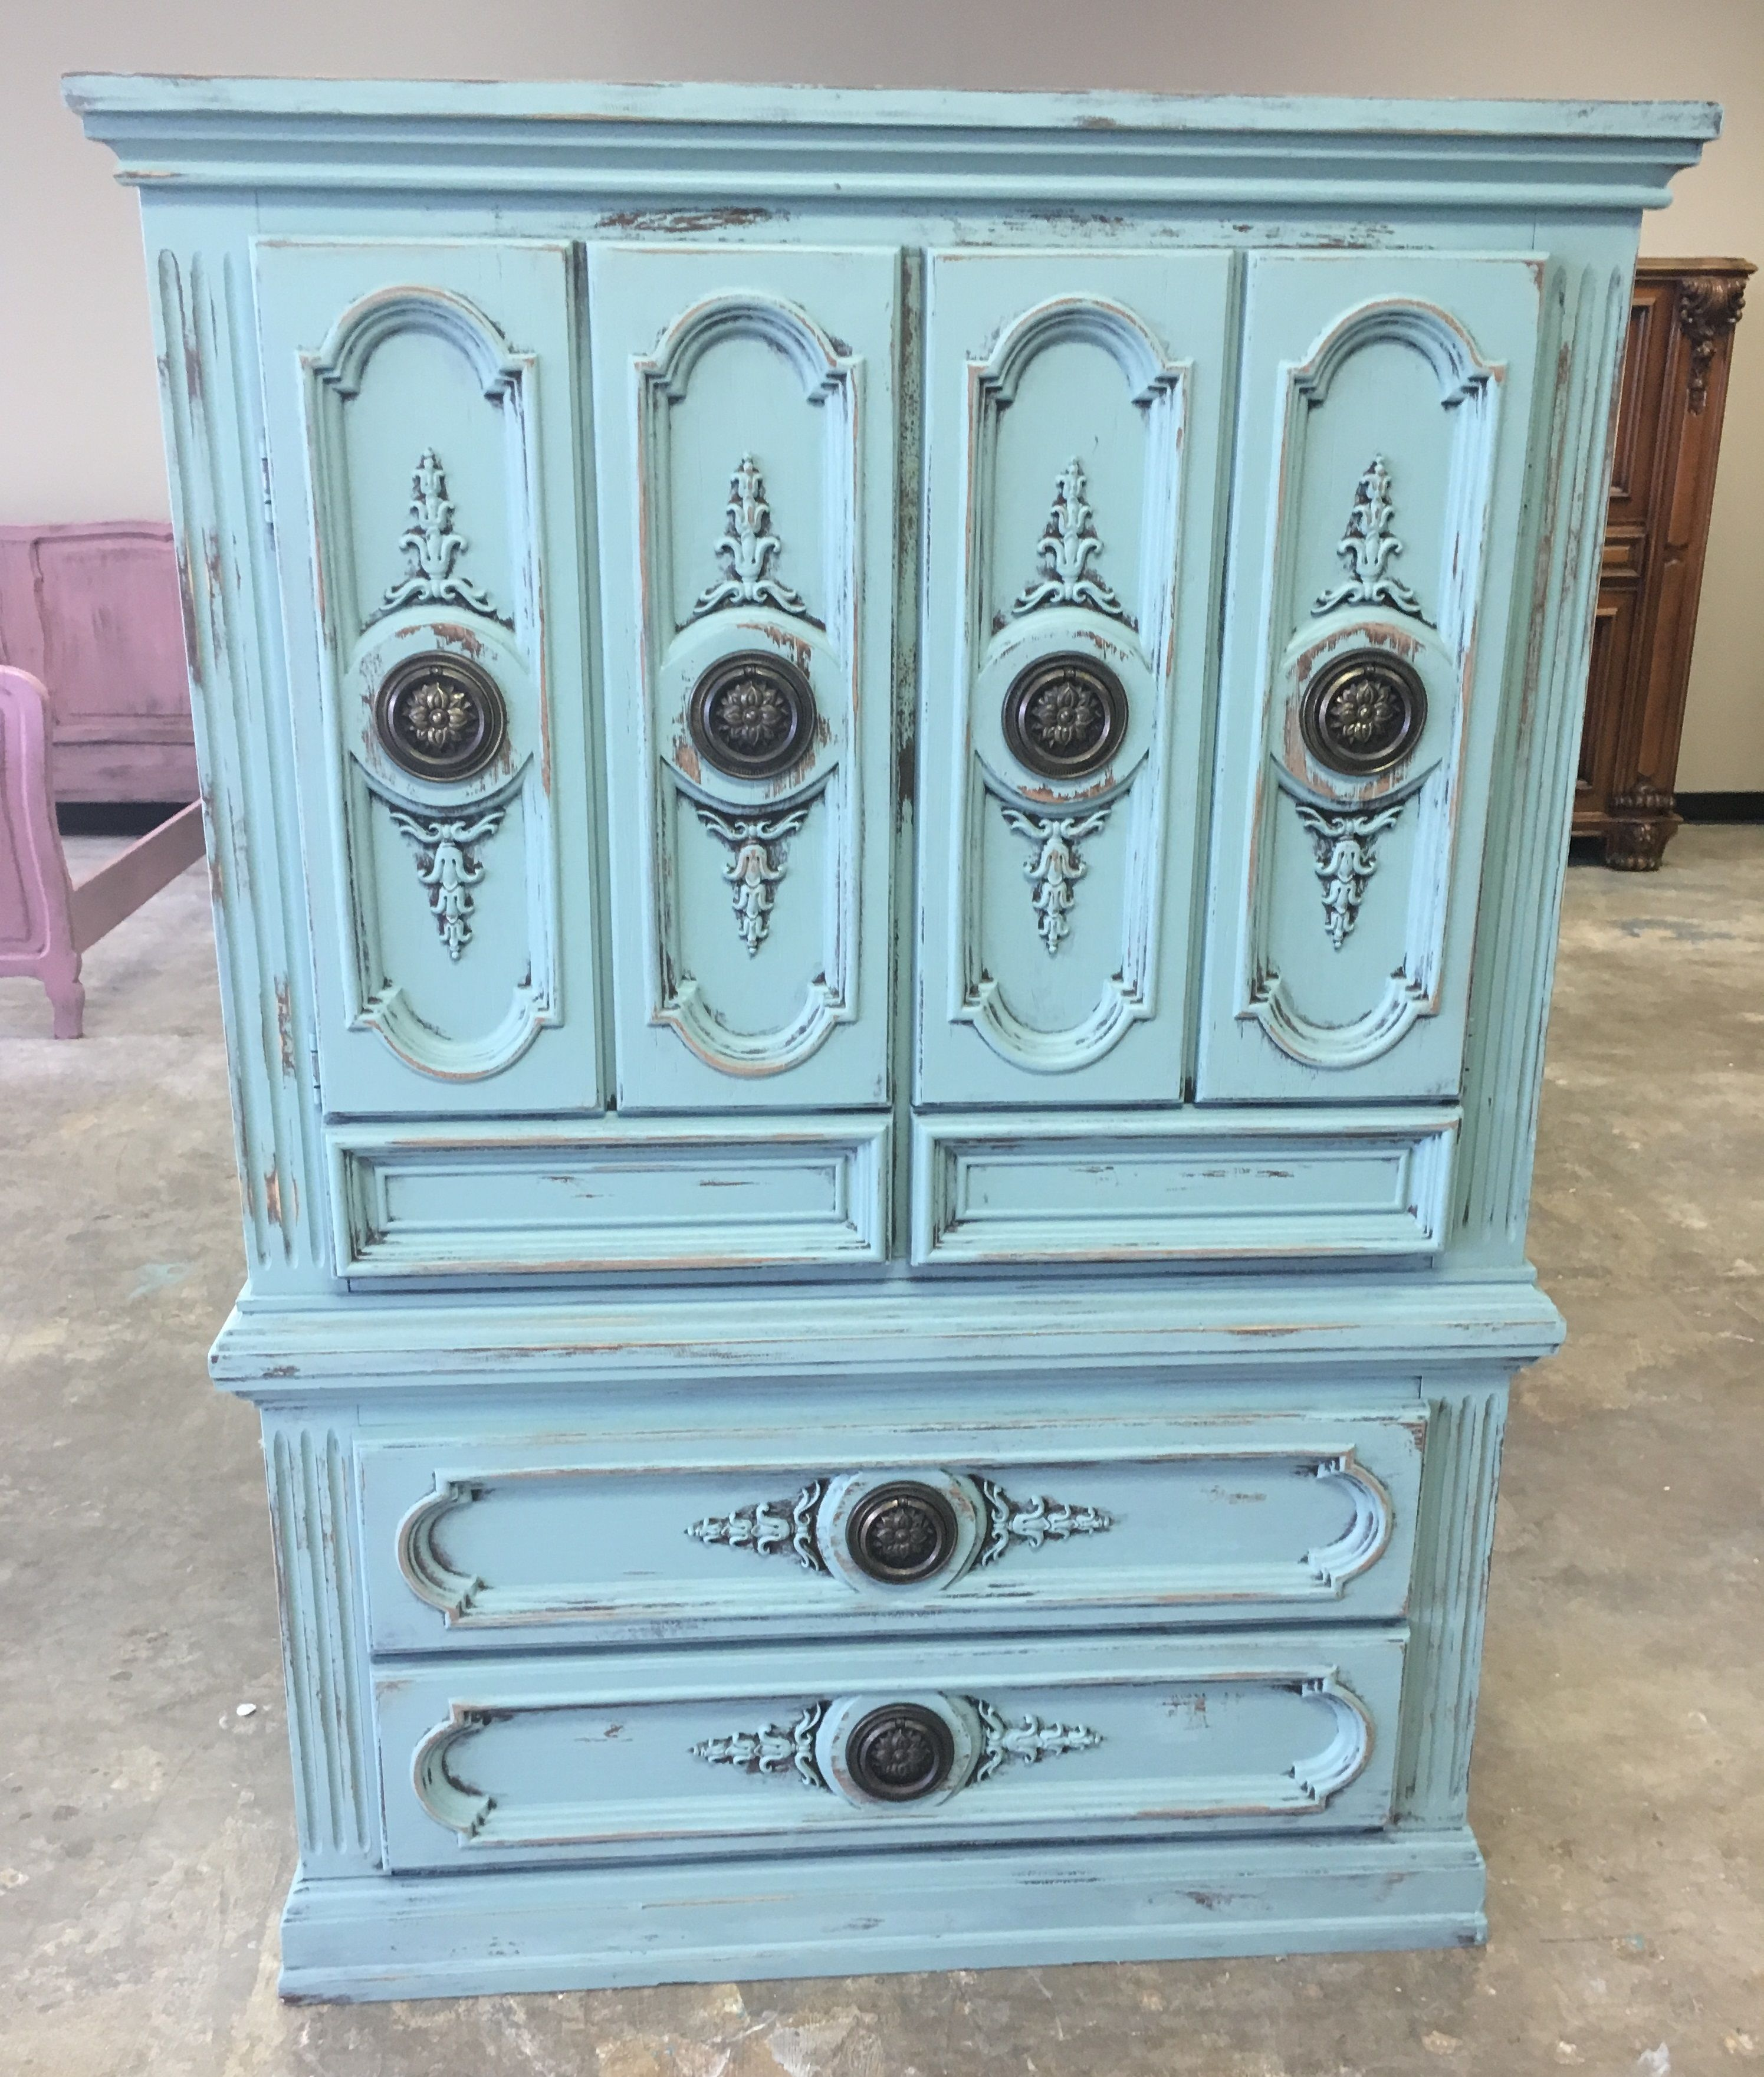 Check Out This Gorgeous Queen Anne Style English Buffet This Would Be A Statement Piece In Yo Shabby Chic Buffet French Country Furniture Shabby Chic Painting